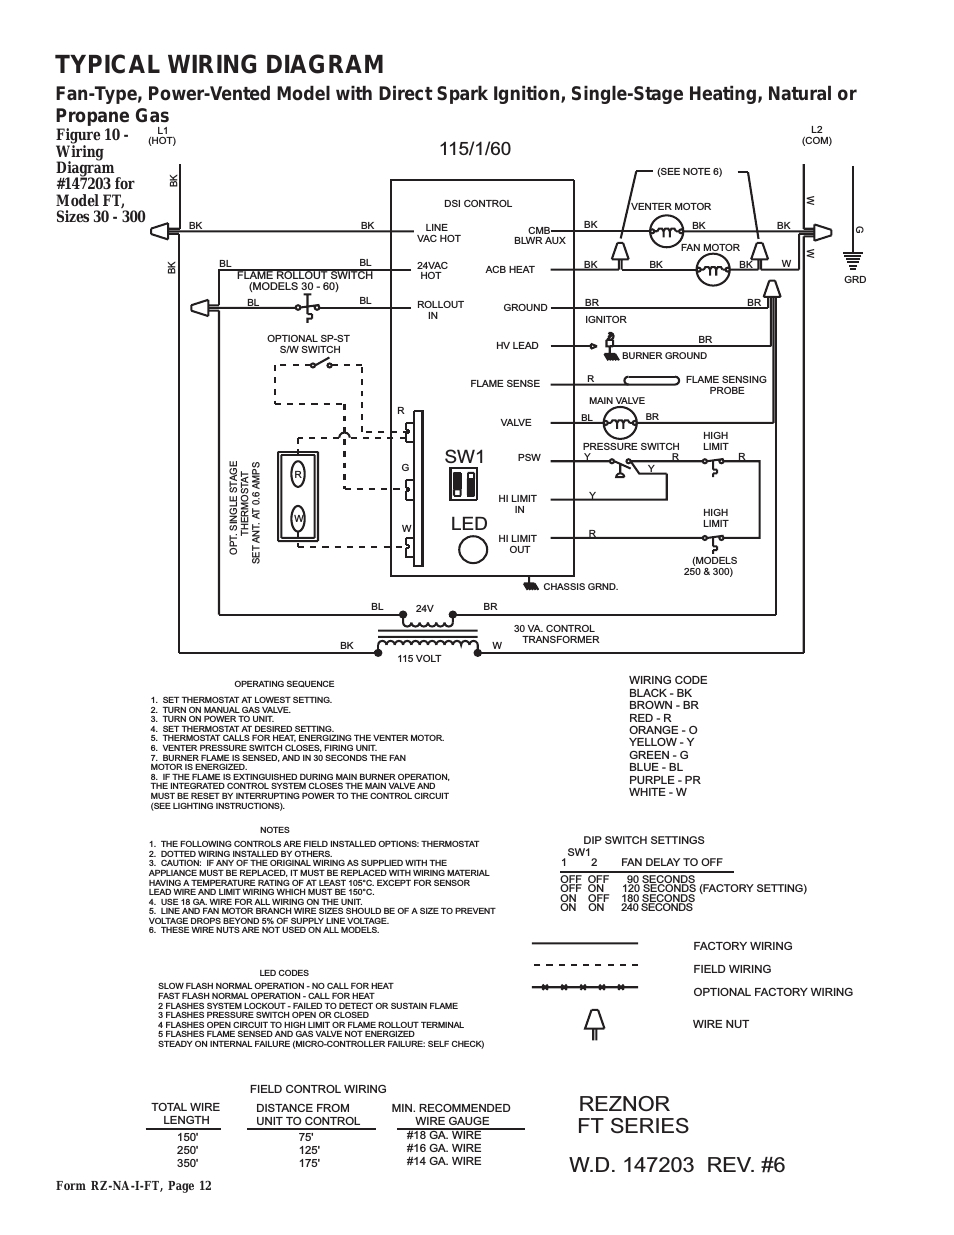 reznor heater wiring diagram Download-reznor heater wiring diagram Collection Modine Heater Wiring Diagram Carrier Free Within 1 g 19-i